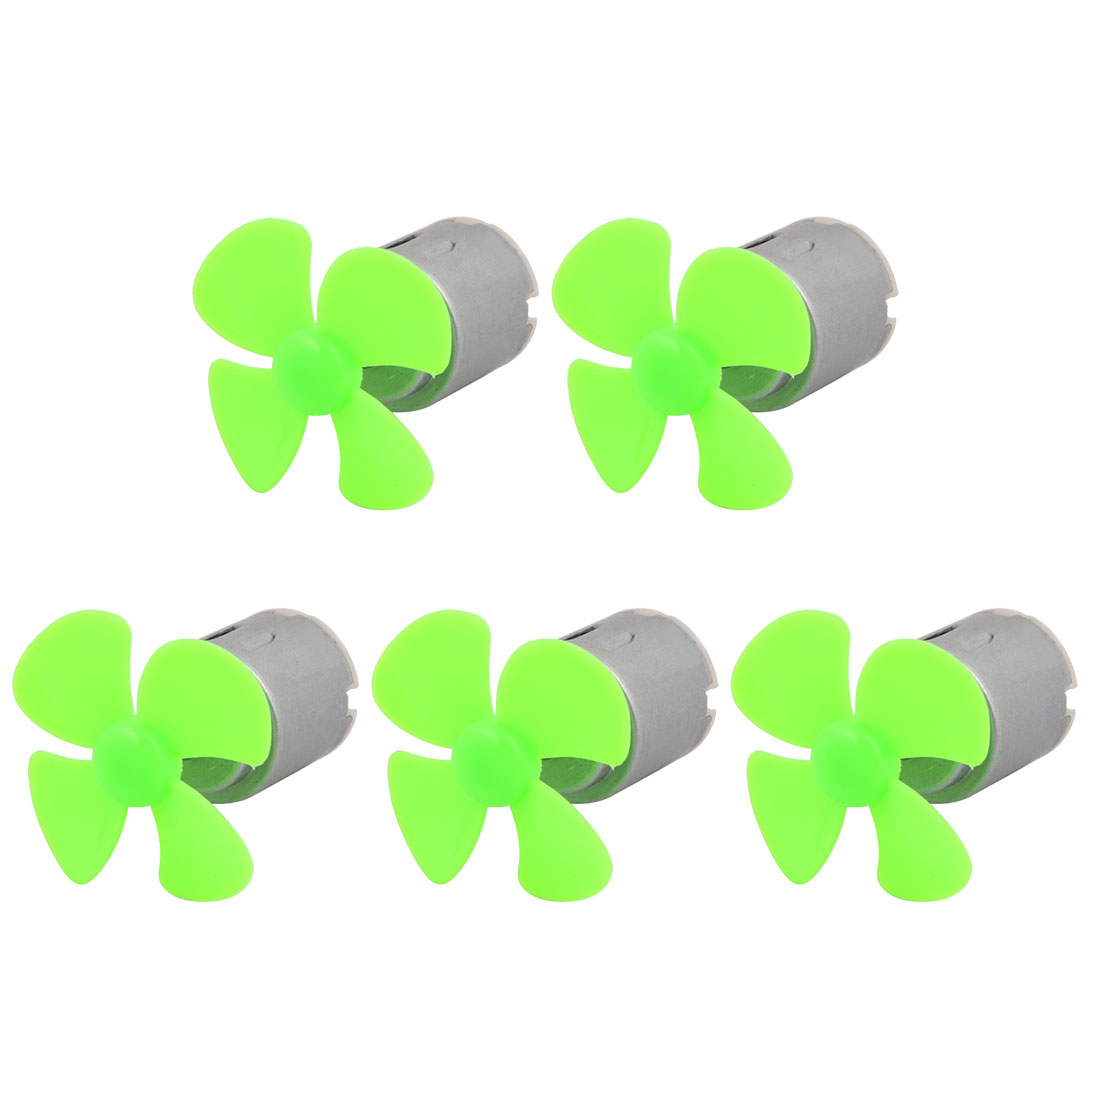 5pcs DC 3V 0.15A 11000RPM Green Strong Force Motor 4 Vanes 40mm Dia Propeller for RC Aircraft